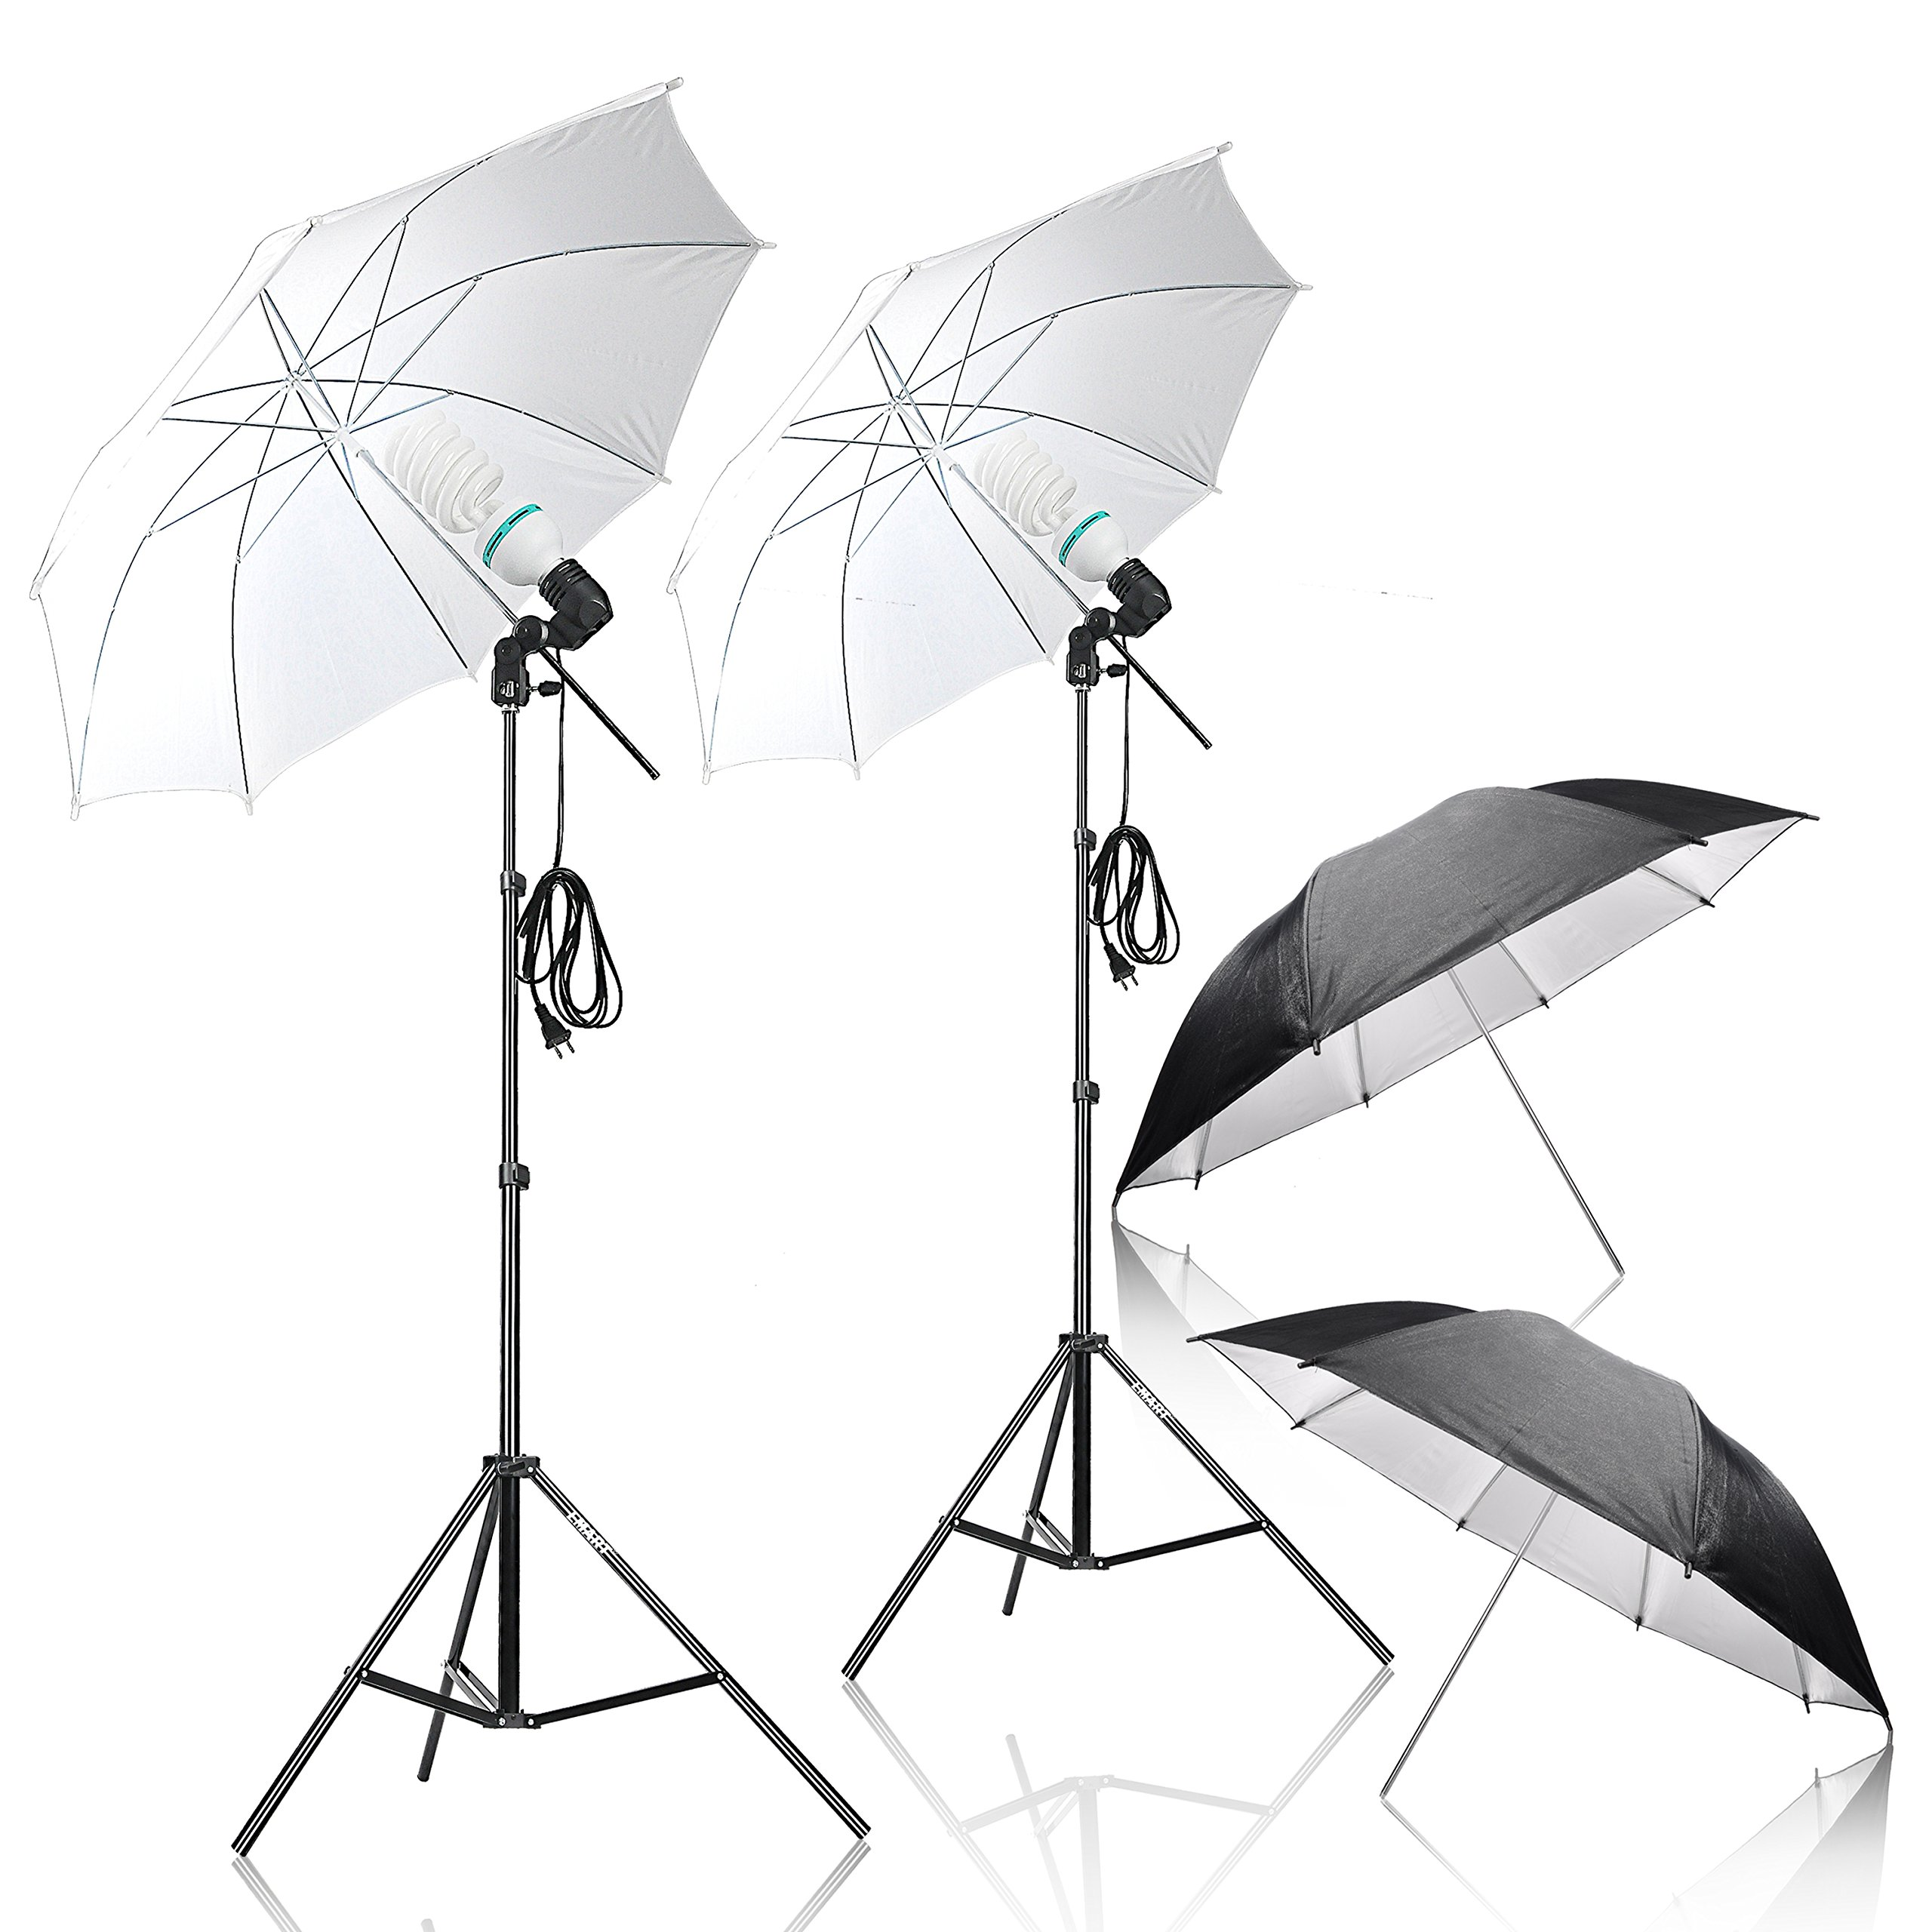 Emart Umbrella Lighting Kit for Photography, 1000w, 5500k Daylight Umbrella Continuous Lighting, Professional Lighting for Video by EMART